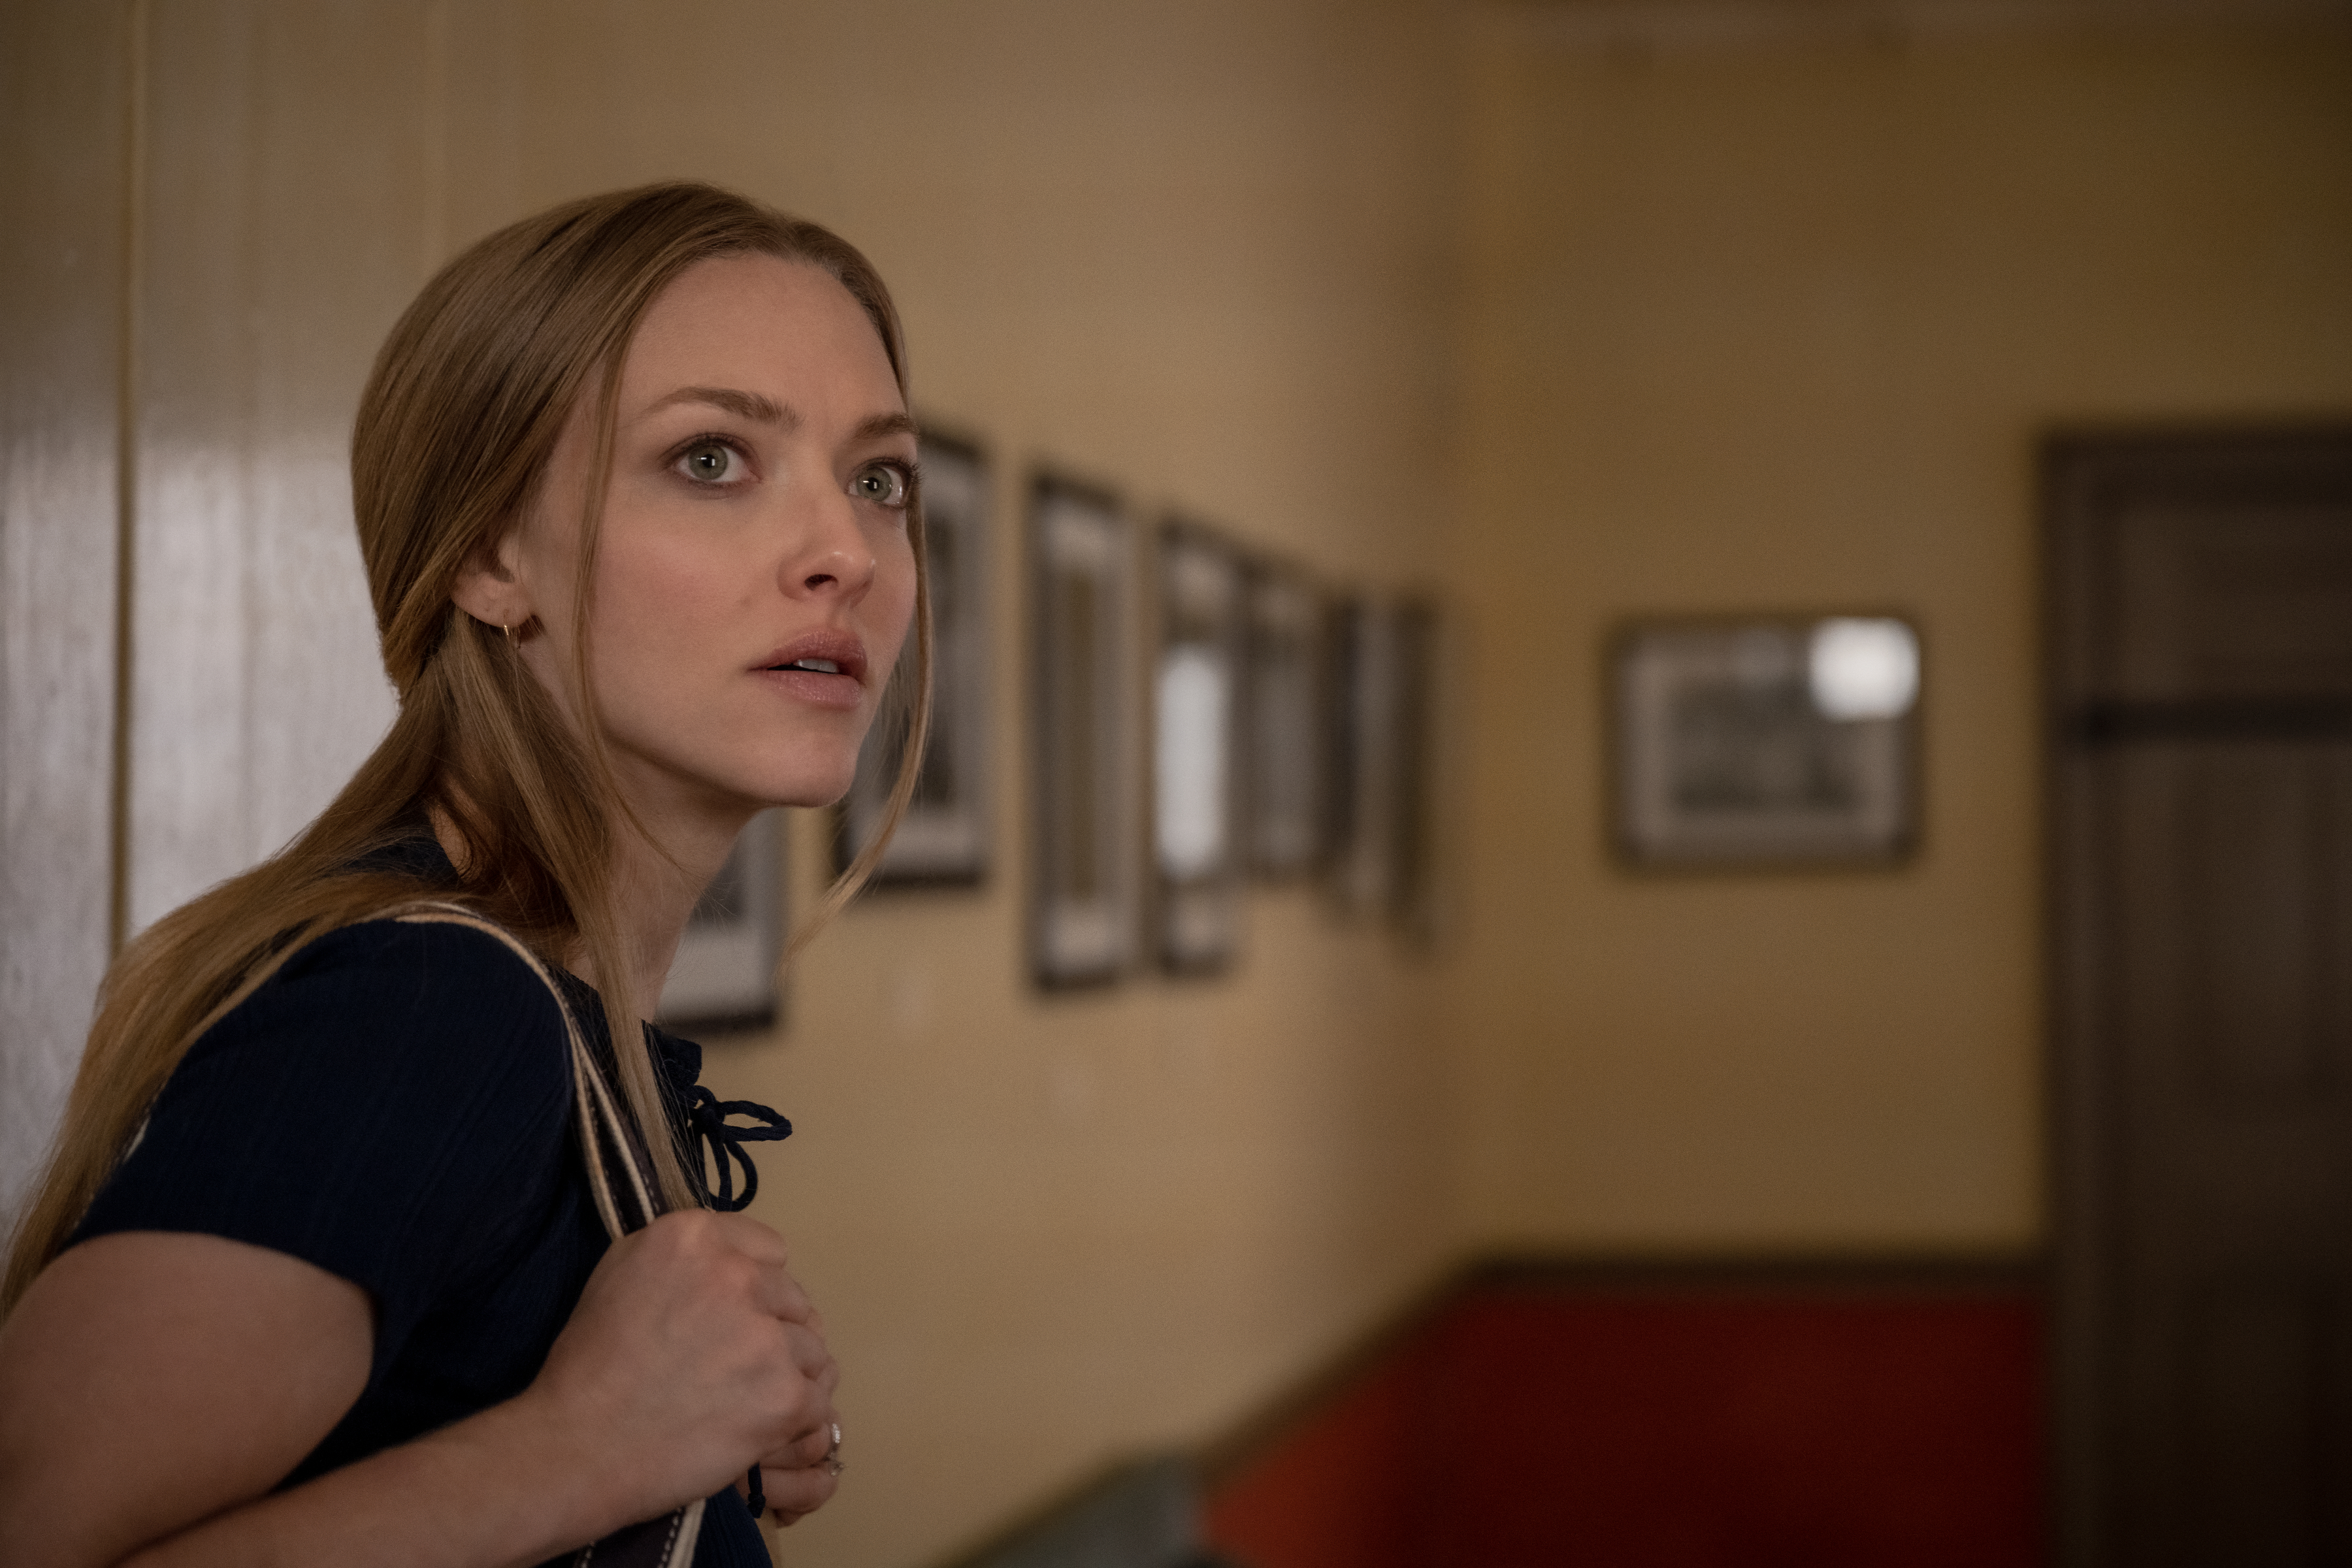 In 'Things Heard & Seen,' Catherine (Amanda Seyfried) discovers the history of her haunted home